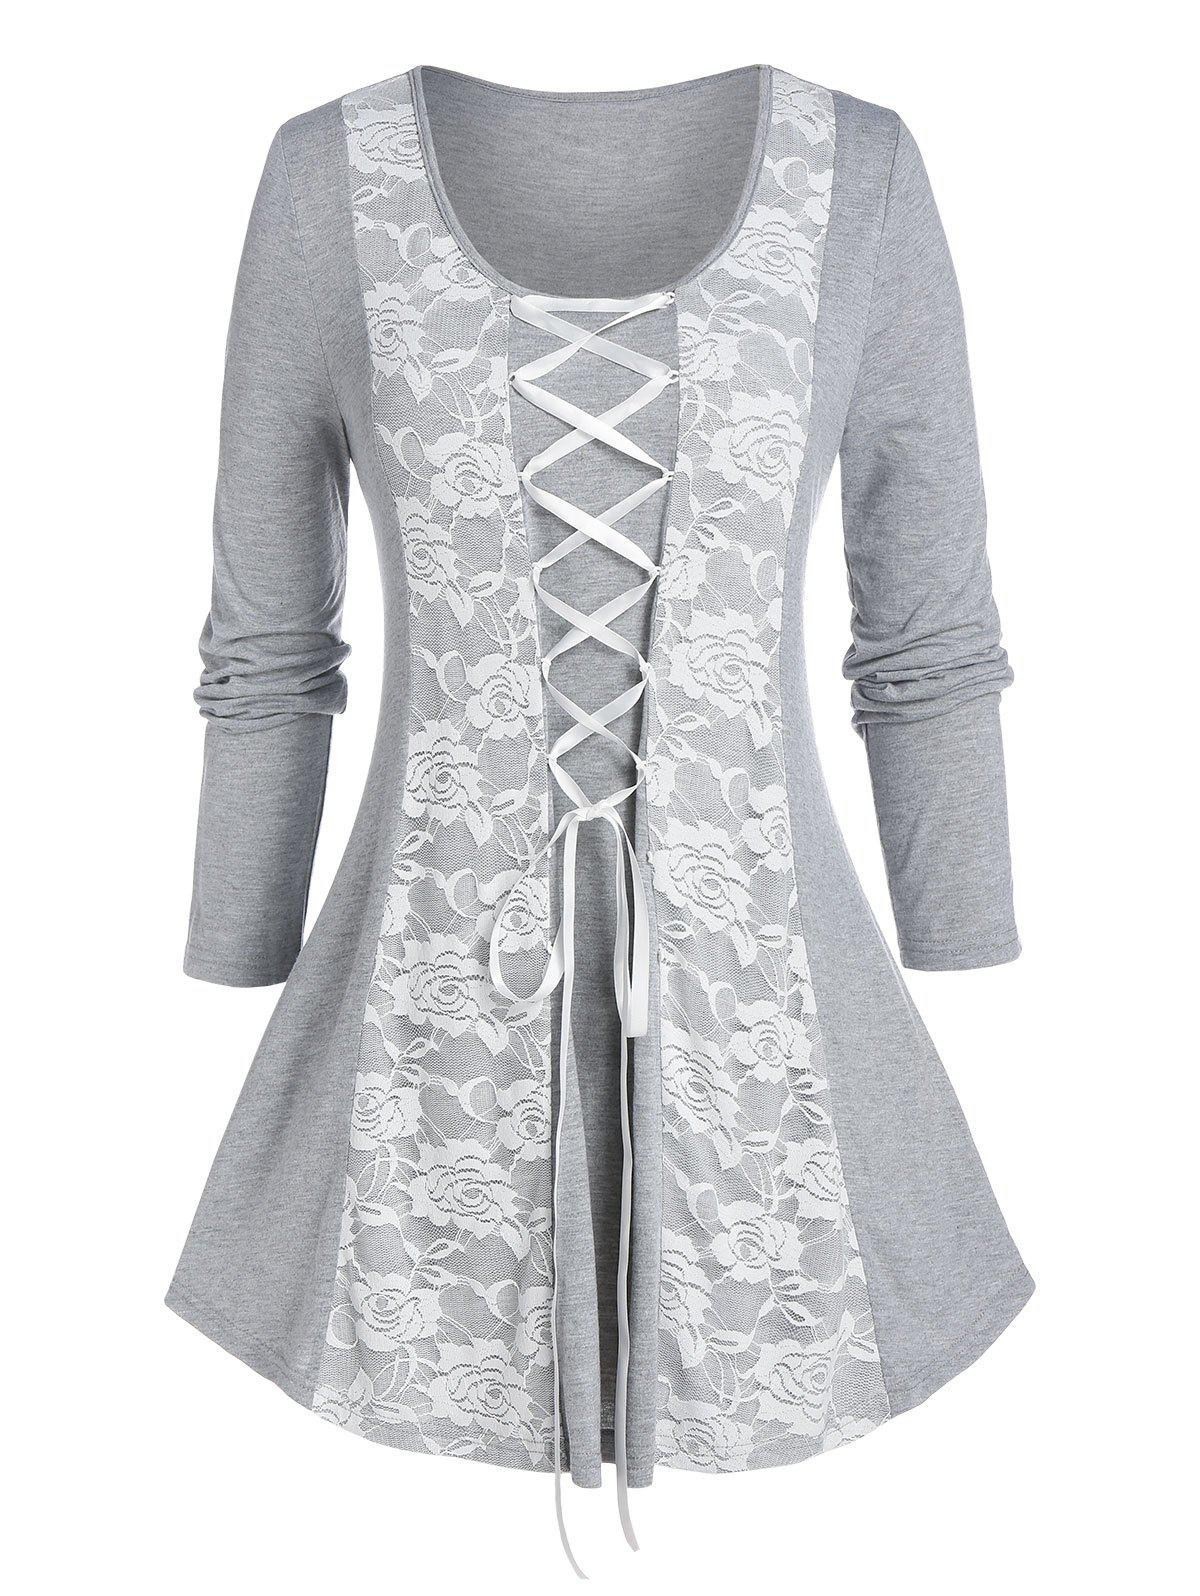 Plus Size Lace Insert Lace-up Long Sleeve Tee - GRAY CLOUD 4X